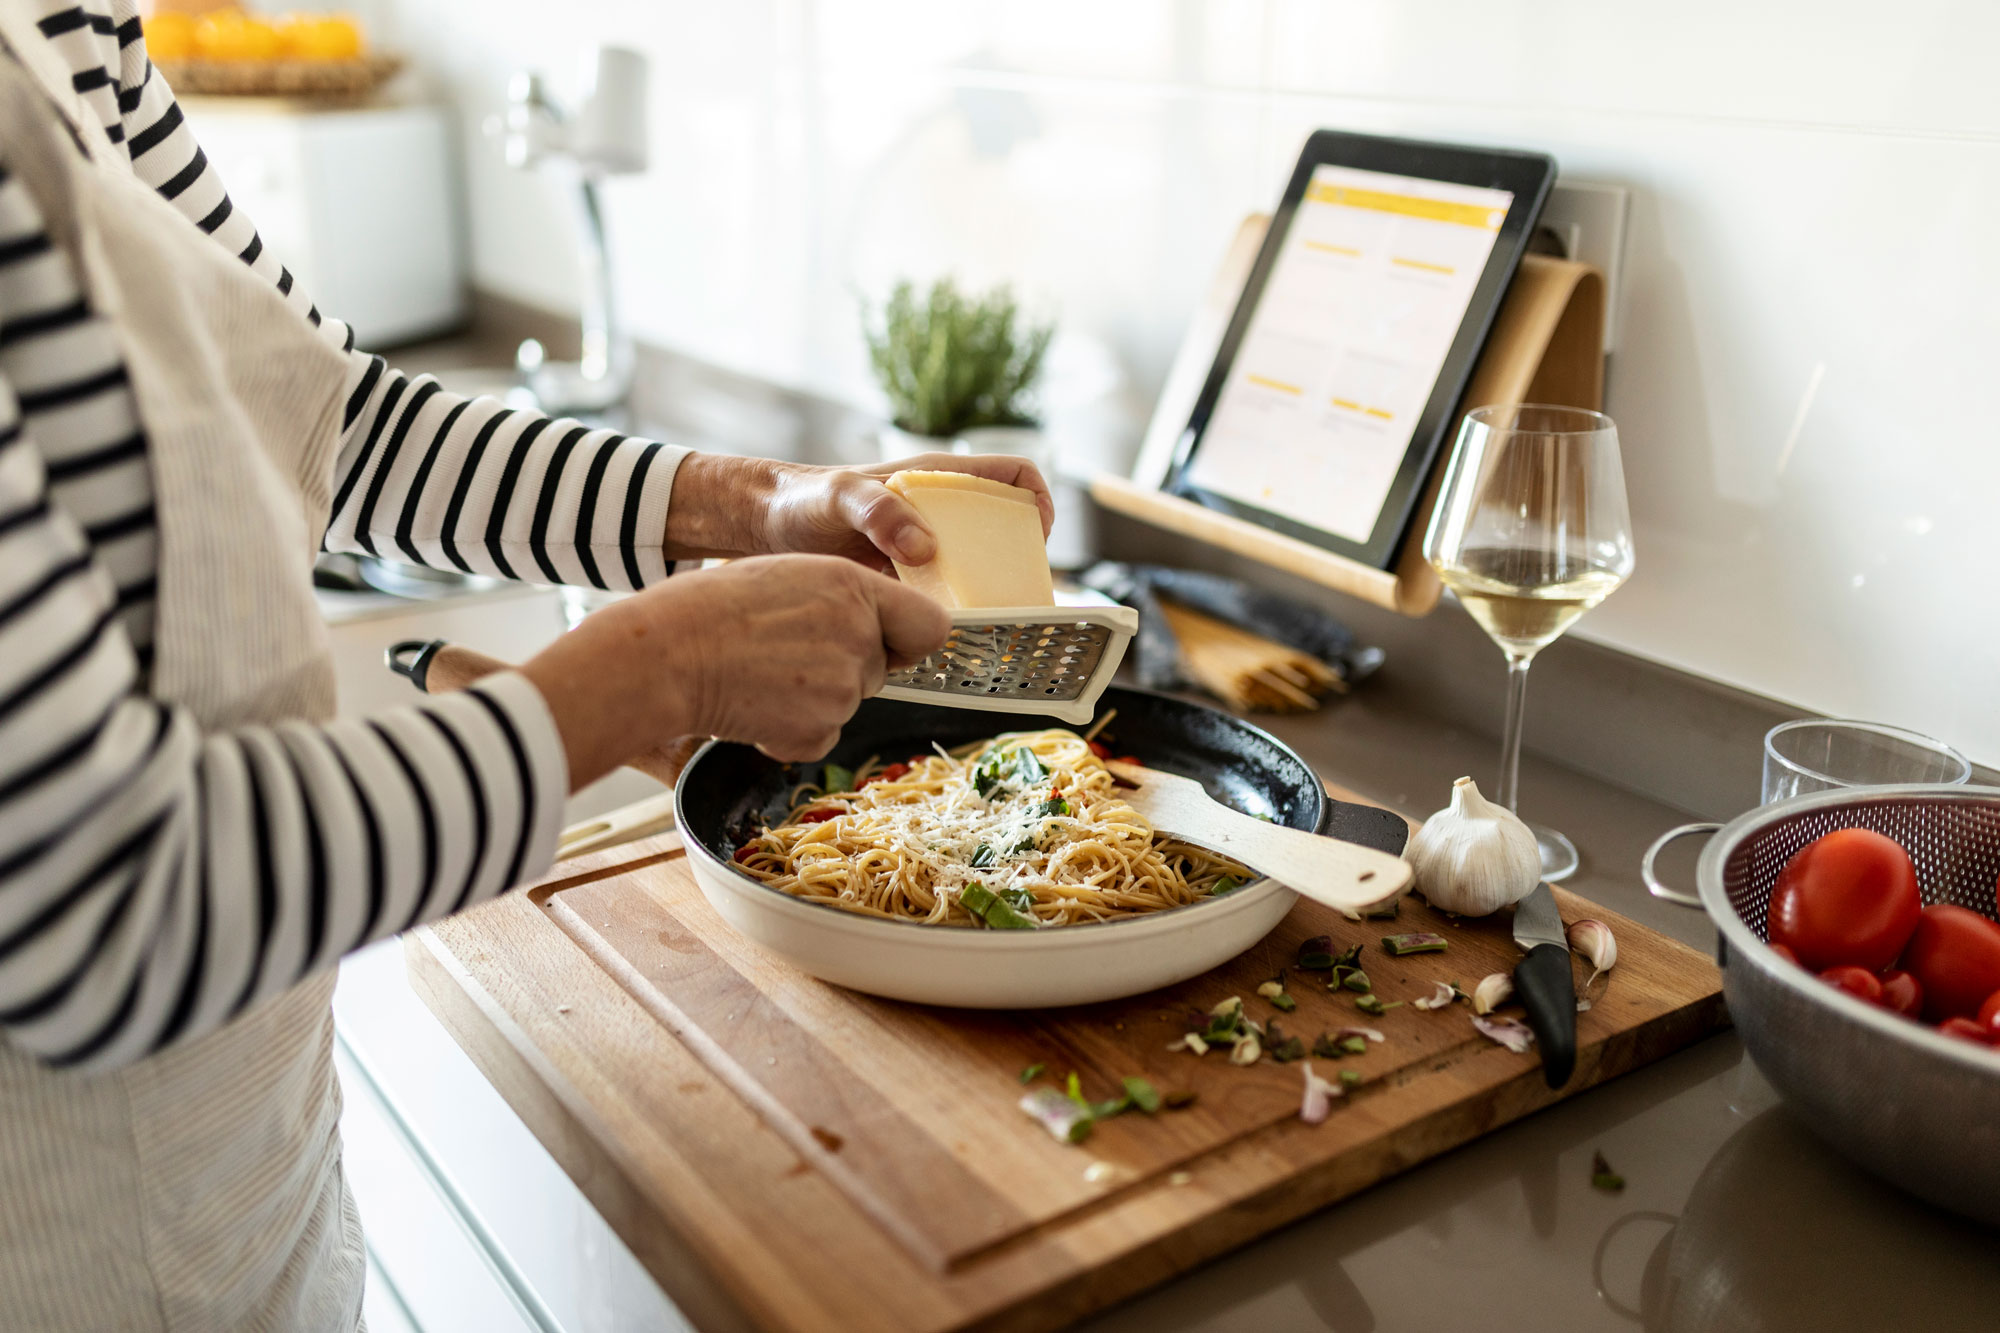 A person grating parmesan cheese into a skillet filled with spaghetti.